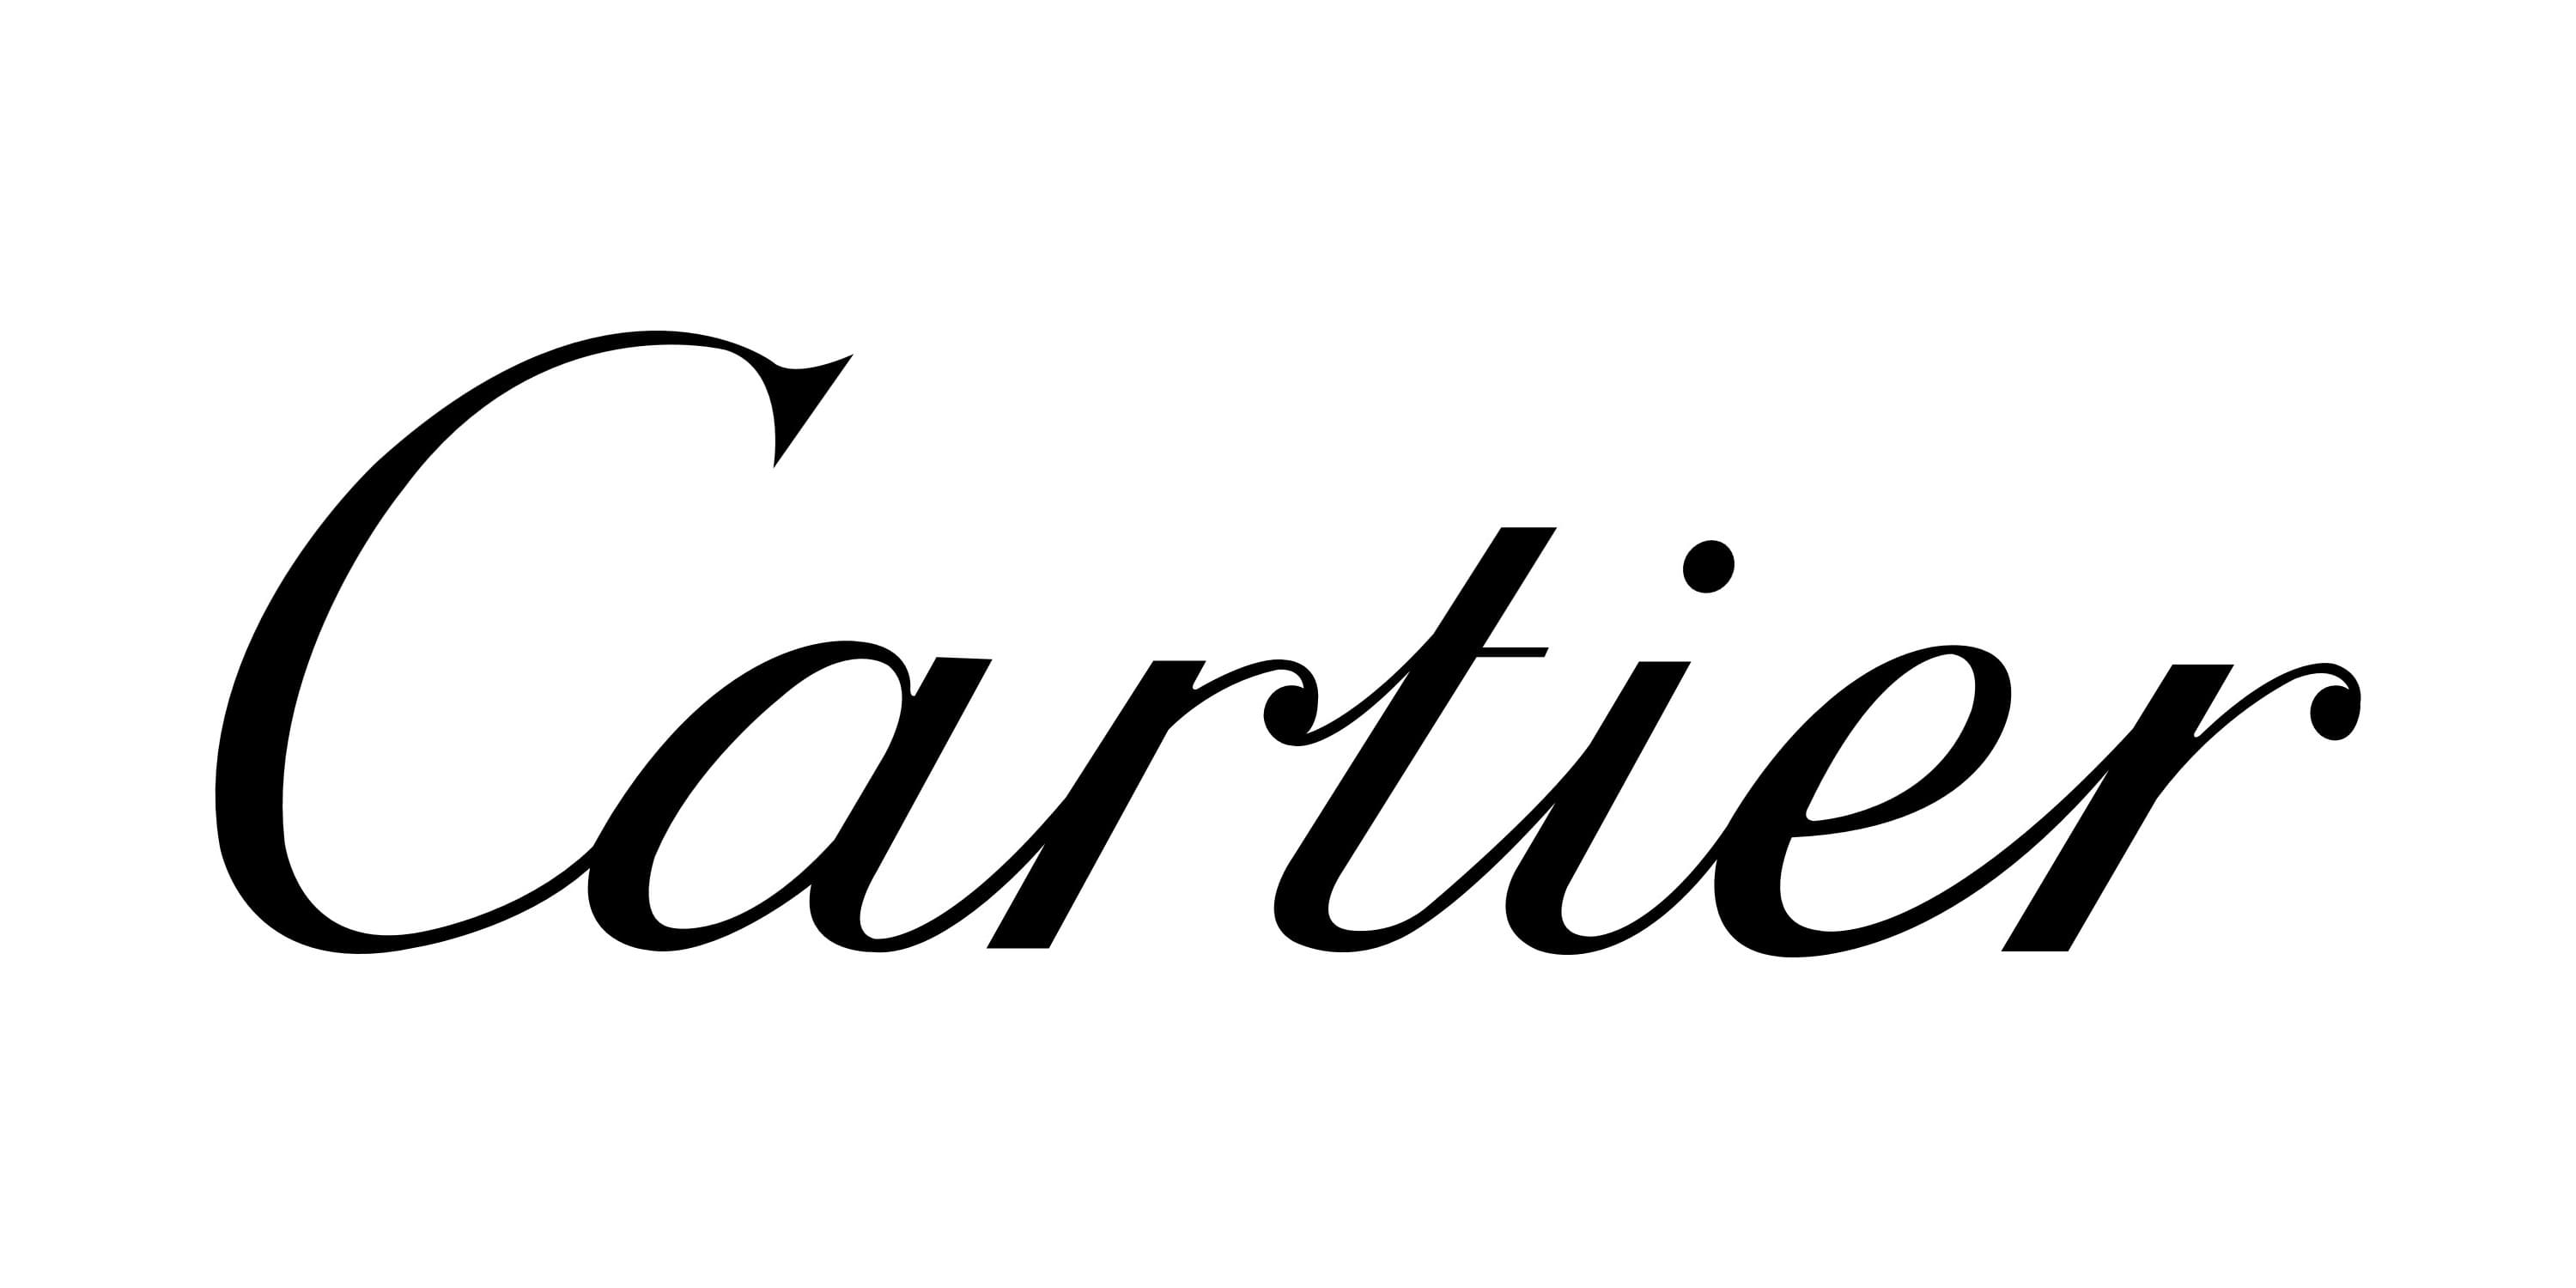 Cartier logo and symbol, meaning, history, PNG